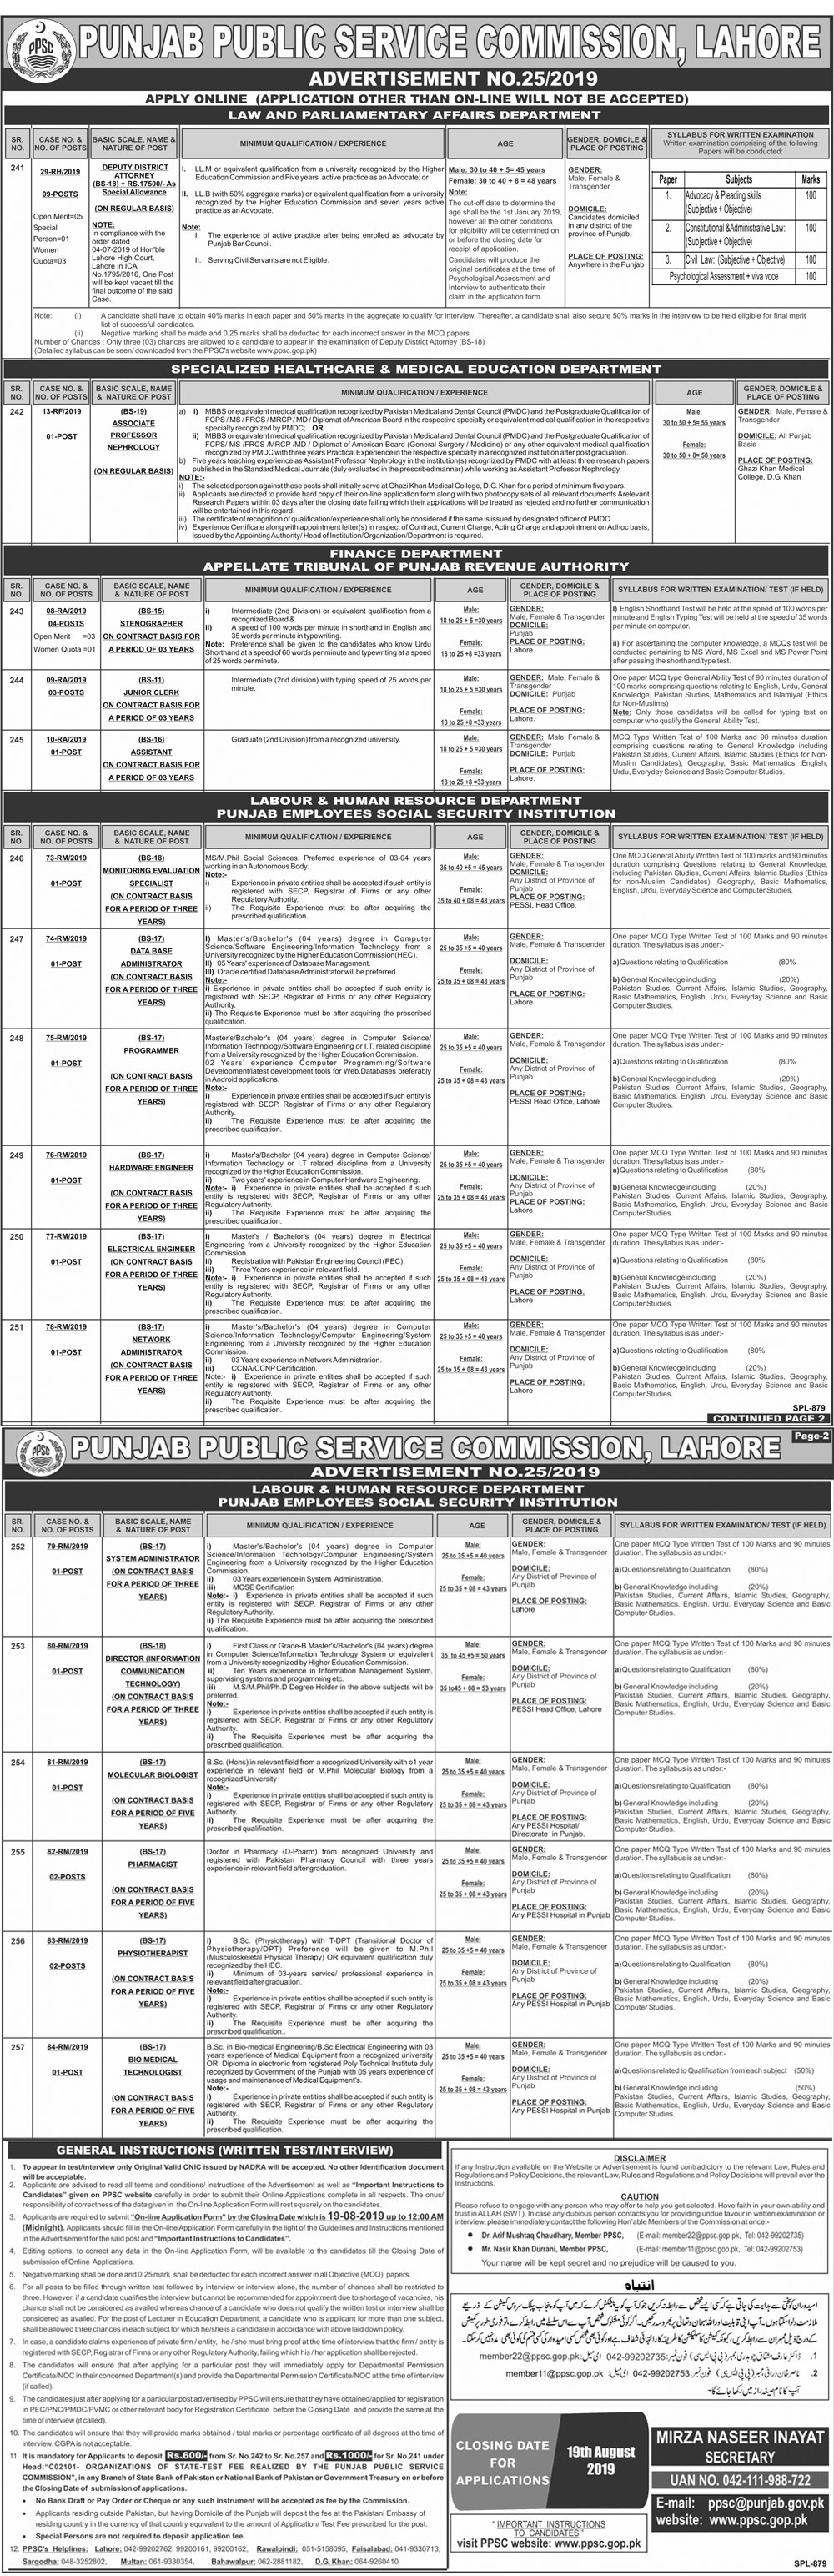 PPSC Jobs August 2019 - Advertisement No 25/2019 - Apply Online